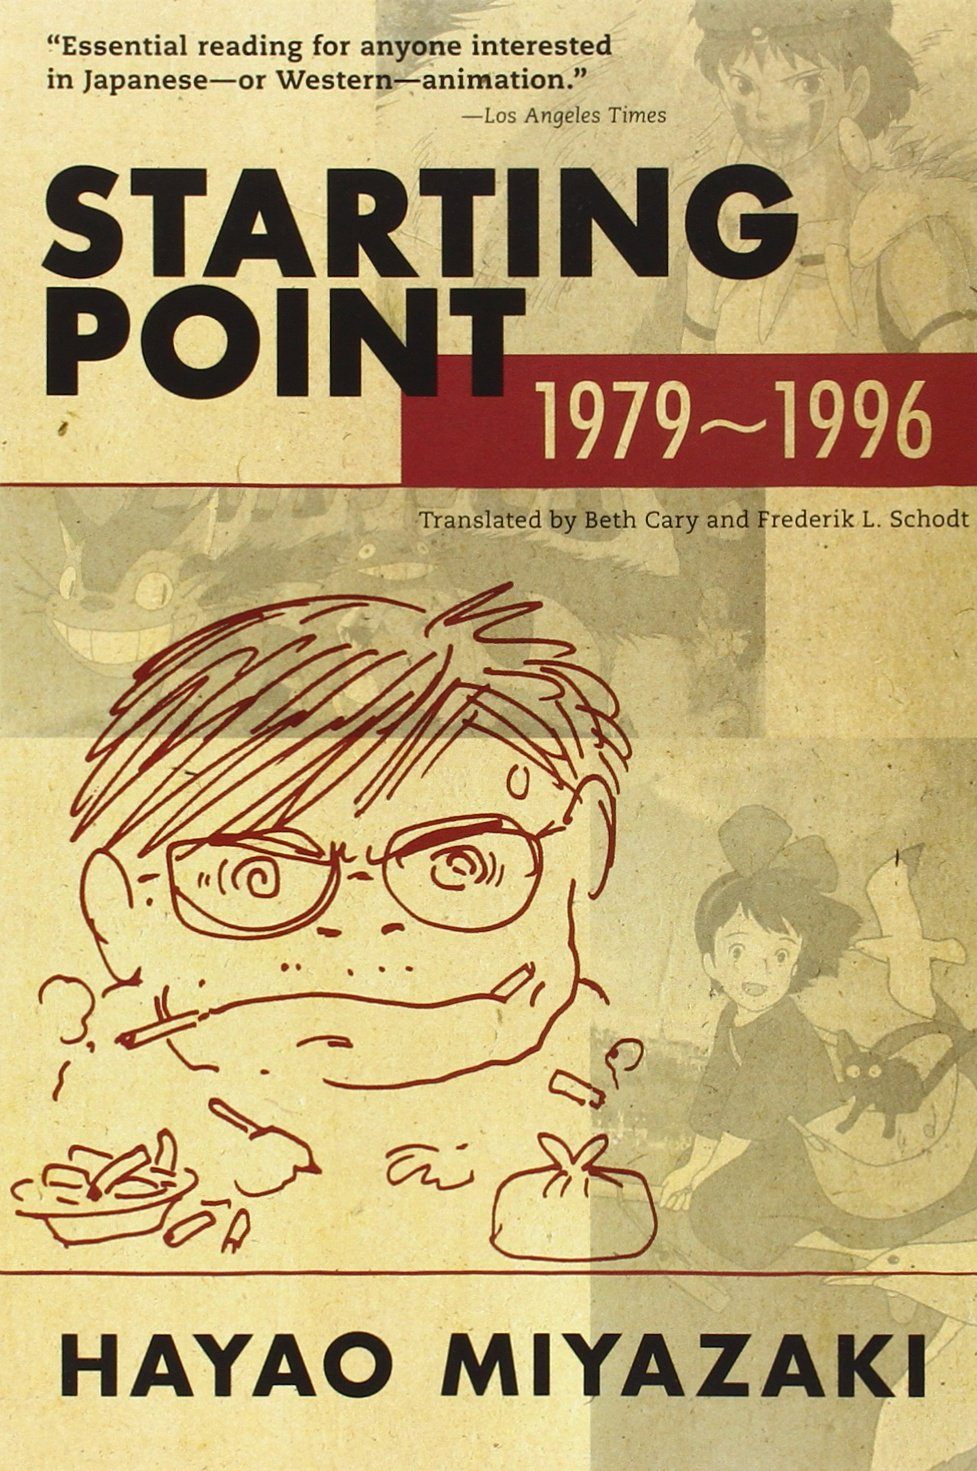 04_Starting Point, 1979-1996